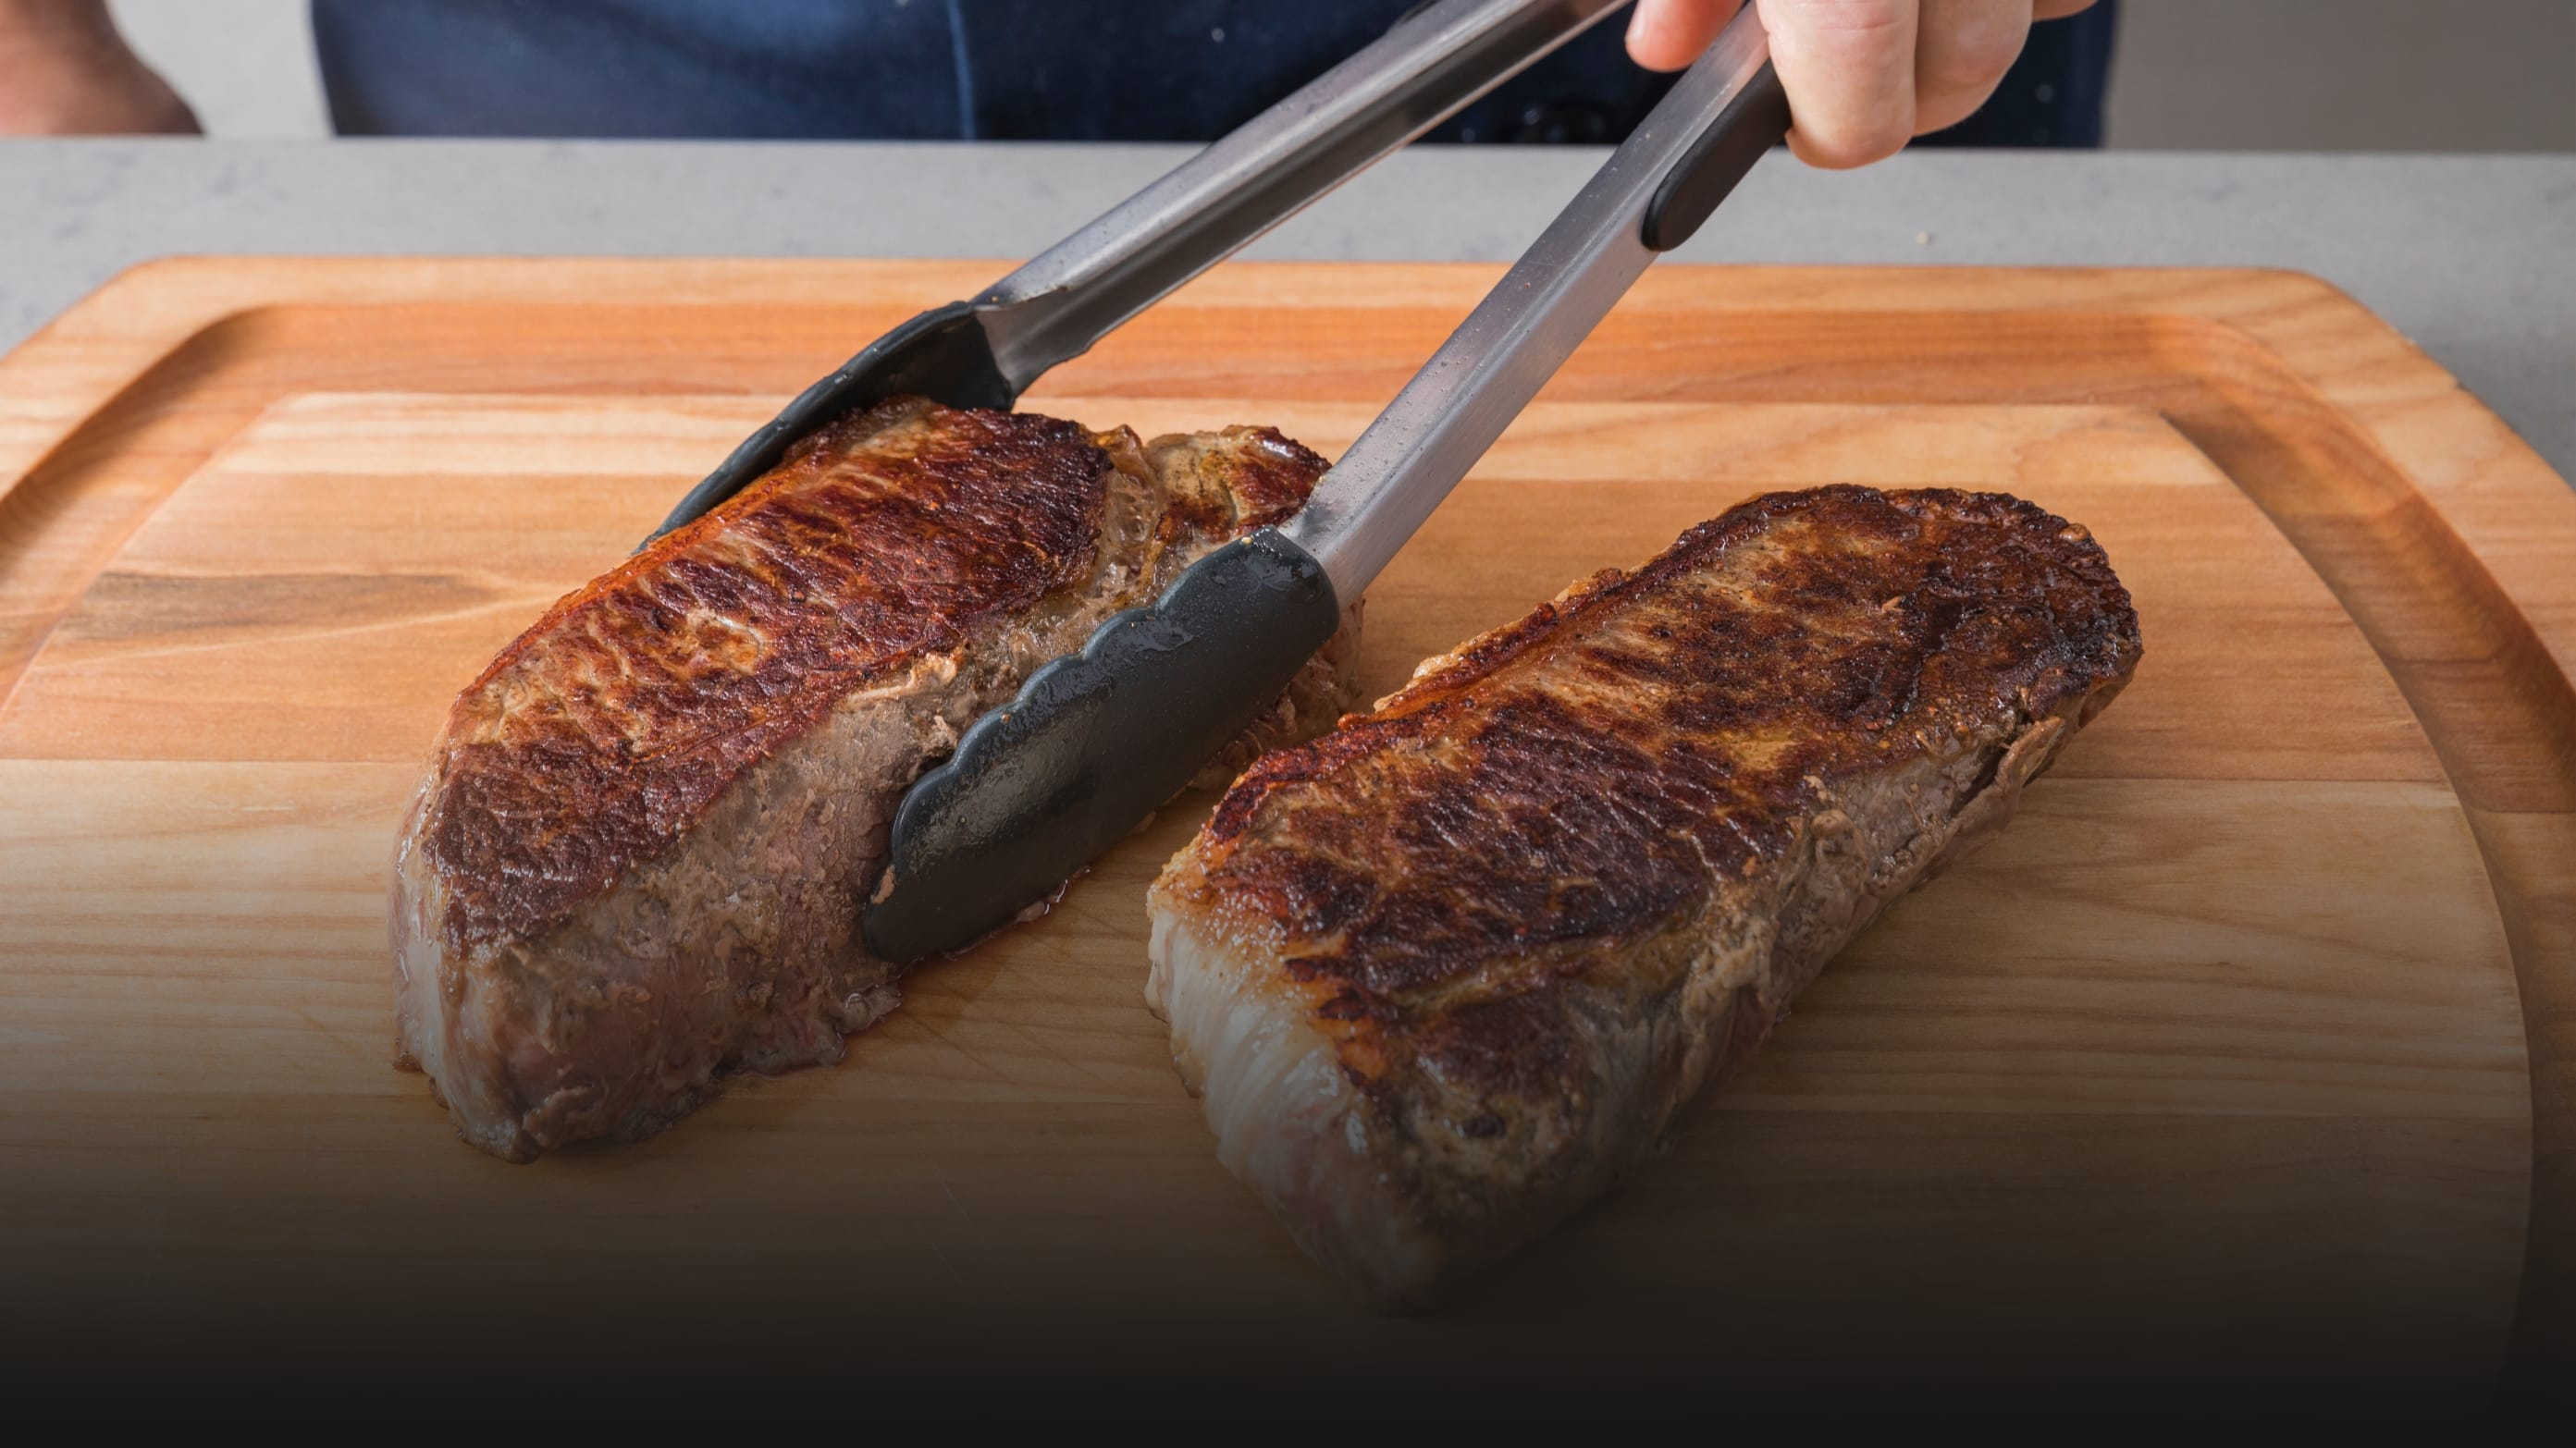 A New Way to Cook Steaks (Without the Smoke and Splattery Mess)